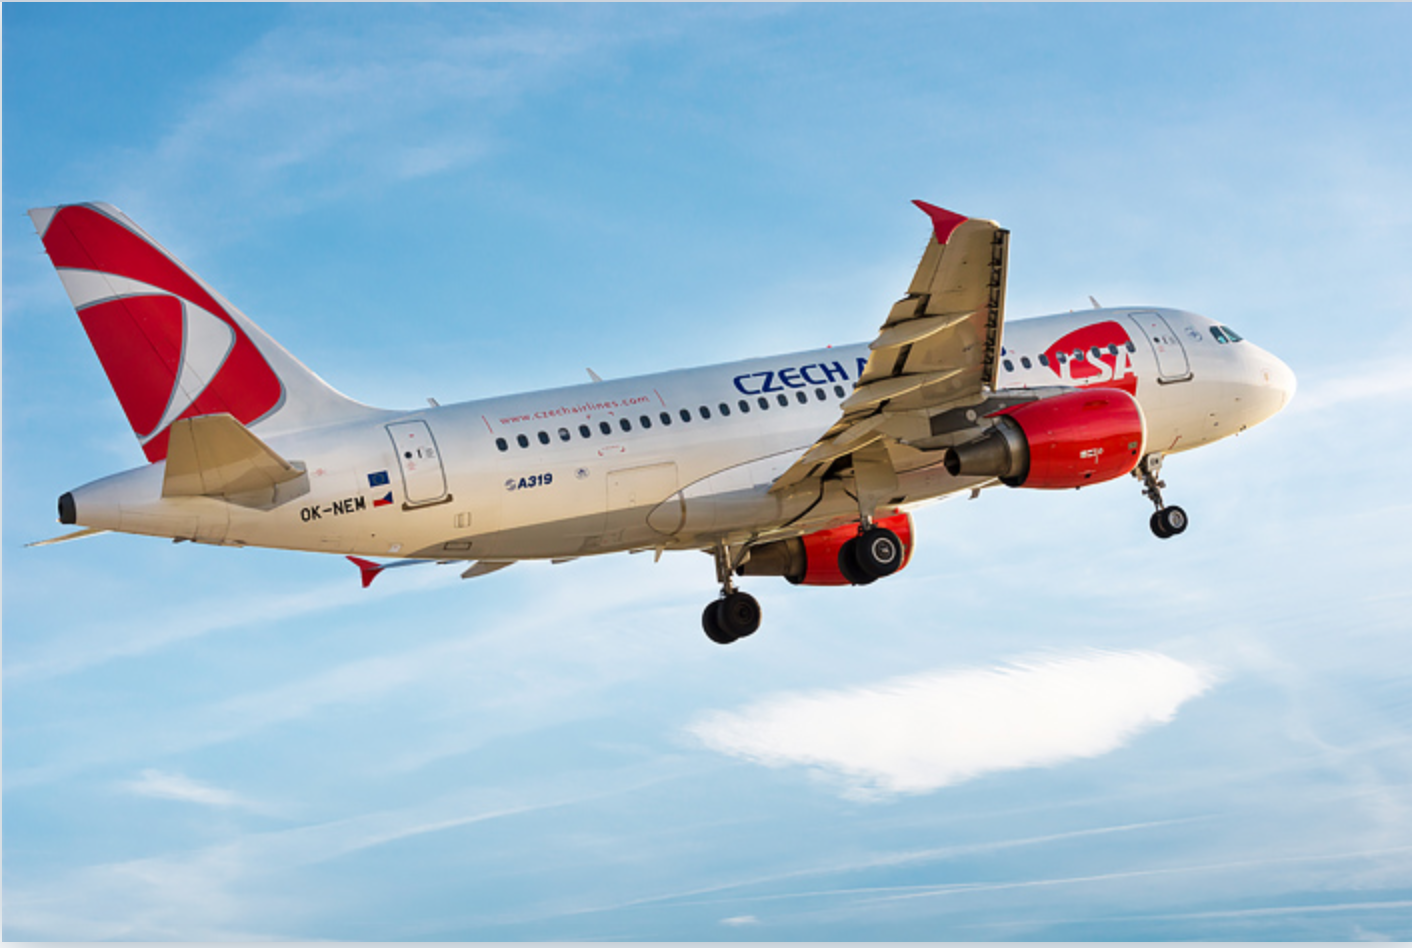 Czech Airlines filed for reorganization in the Municipal Court of Prague